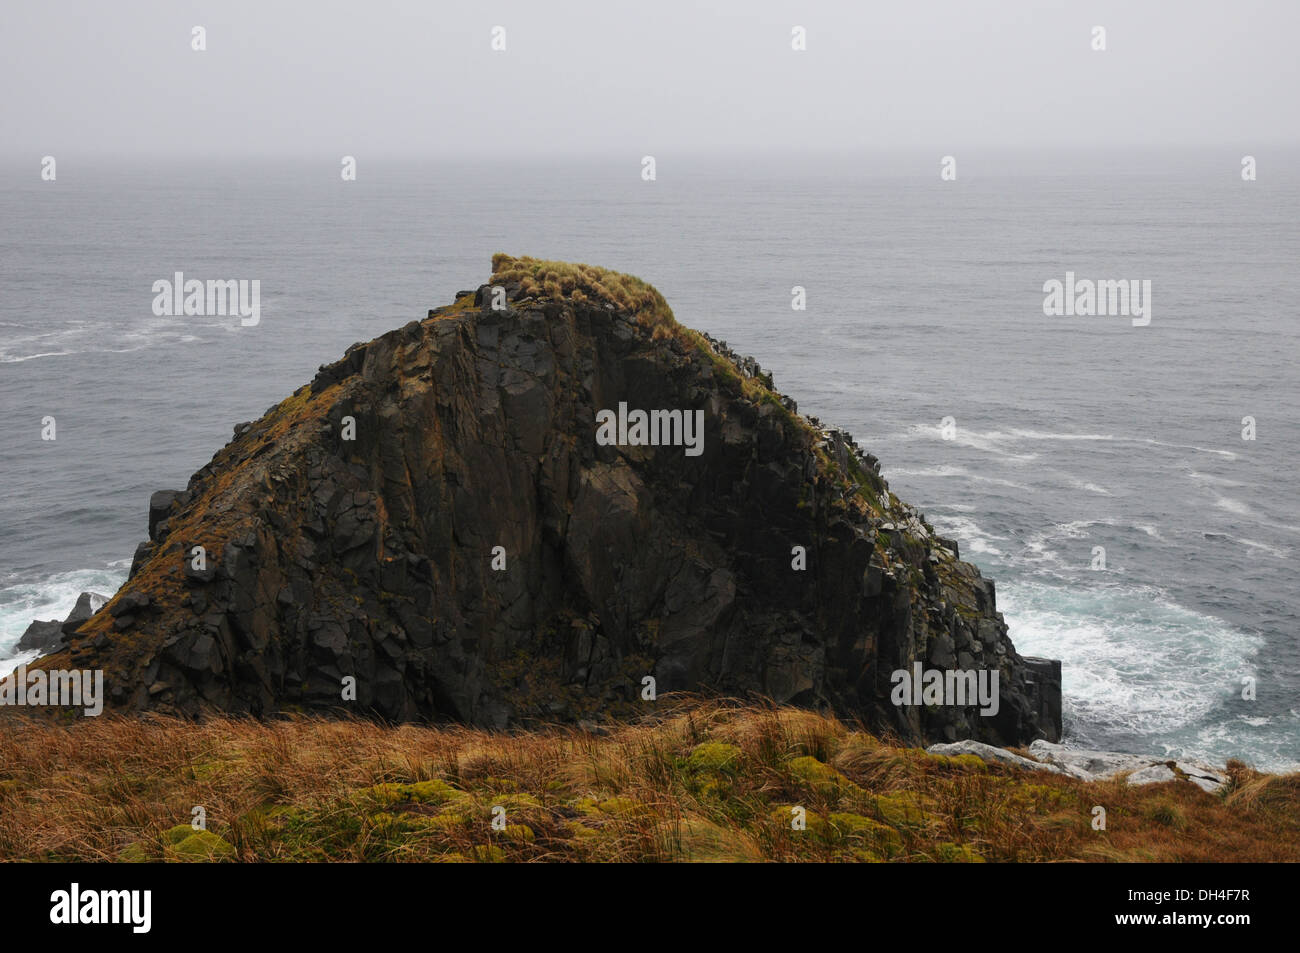 last point of land before Antarctica - Stock Image